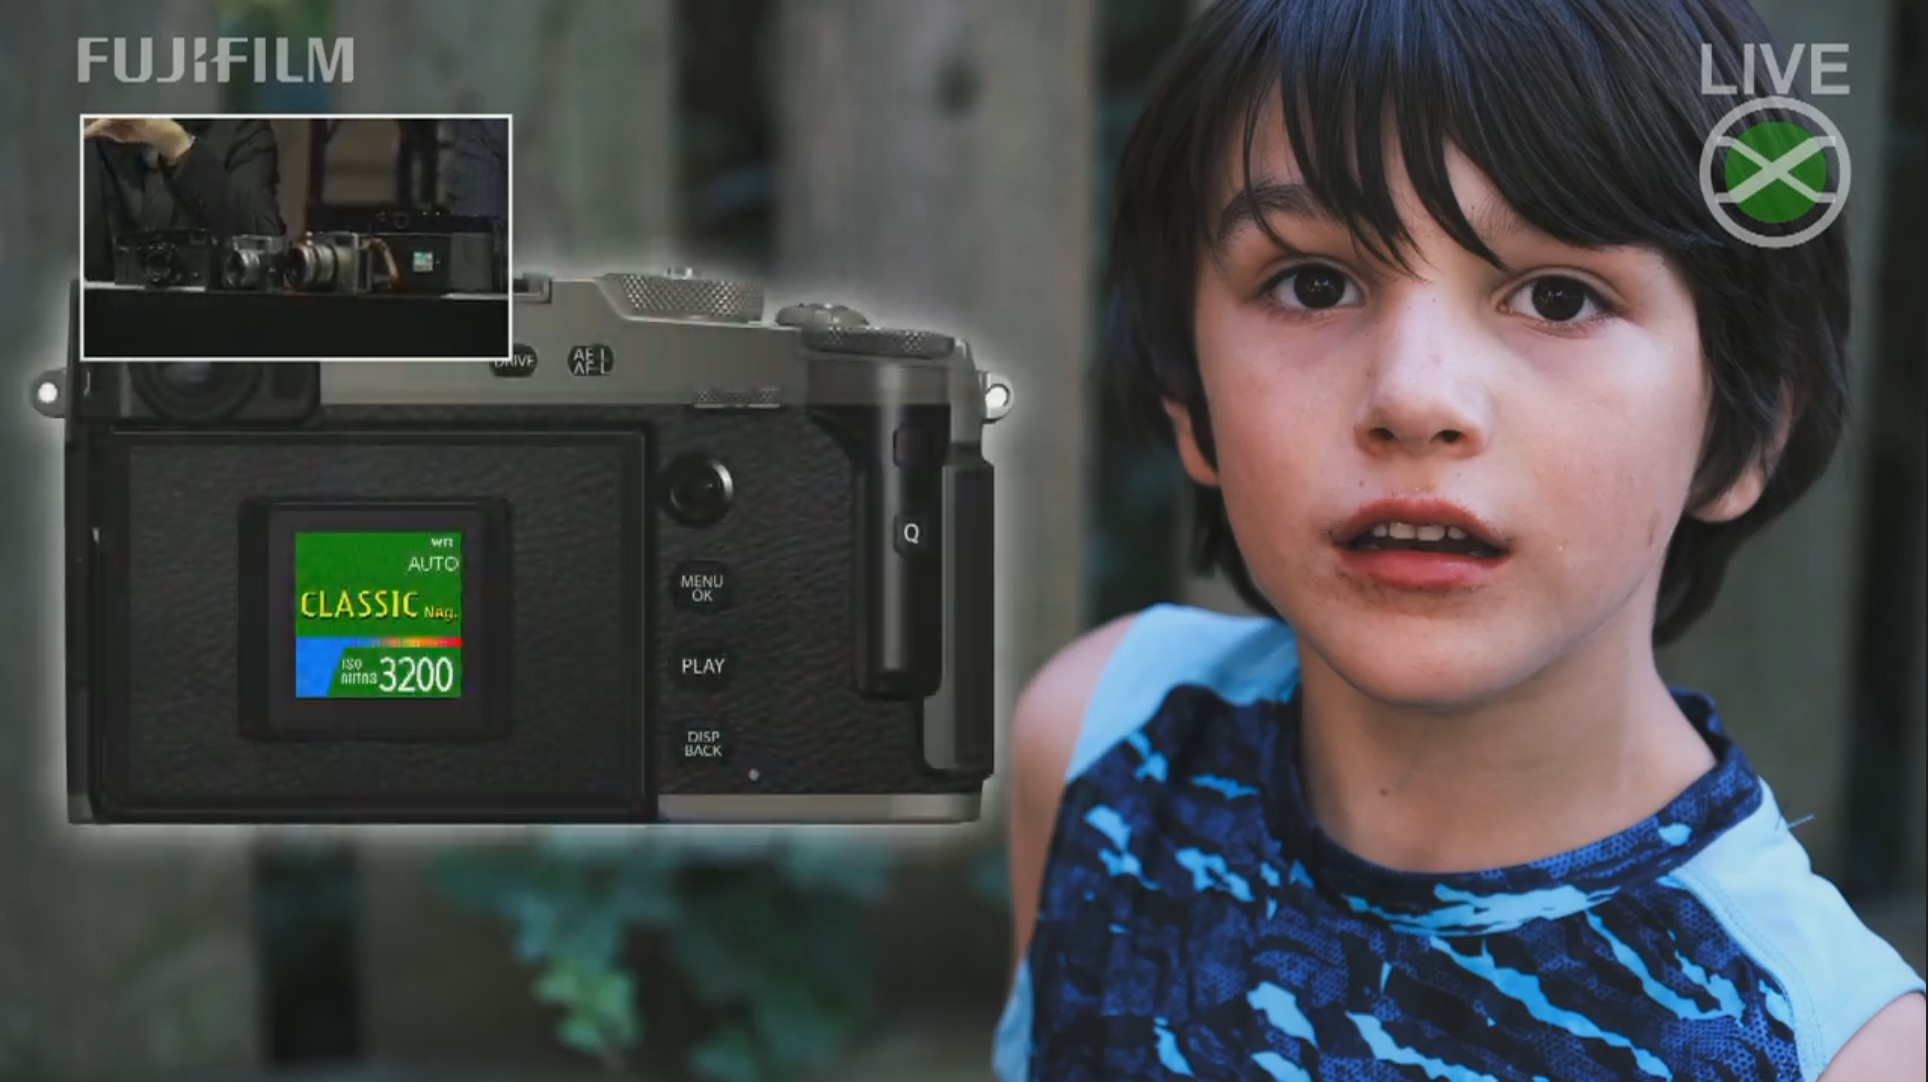 Fujifilm X-Pro3 Development Announcement: Coming October 23, First Specs and Images - Fuji Rumors